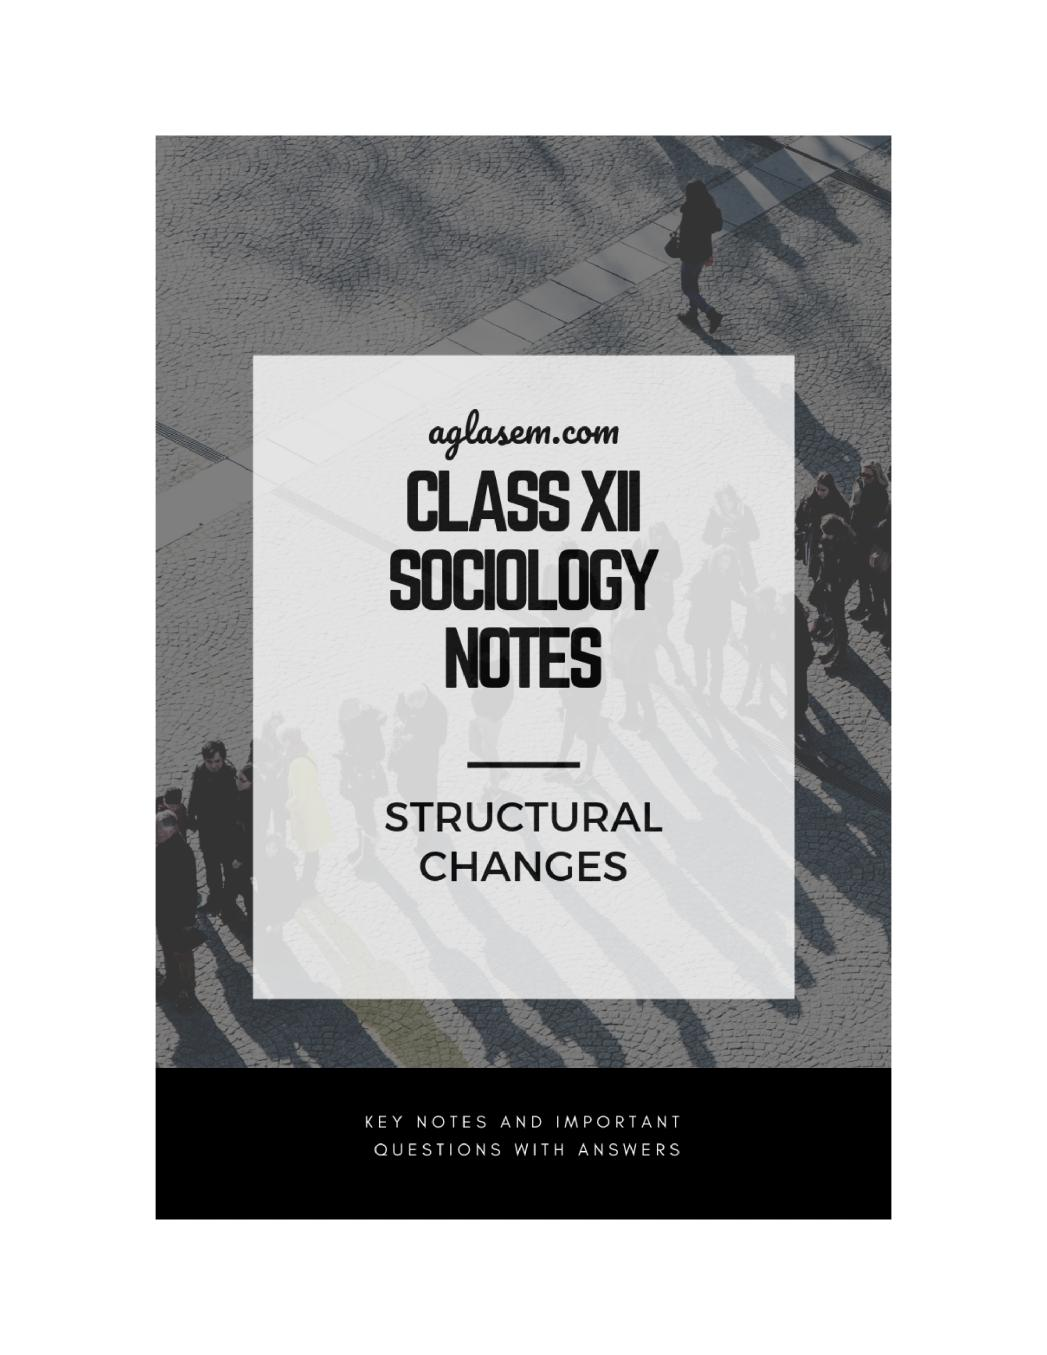 Class 12 Sociology Notes for Structural Changes